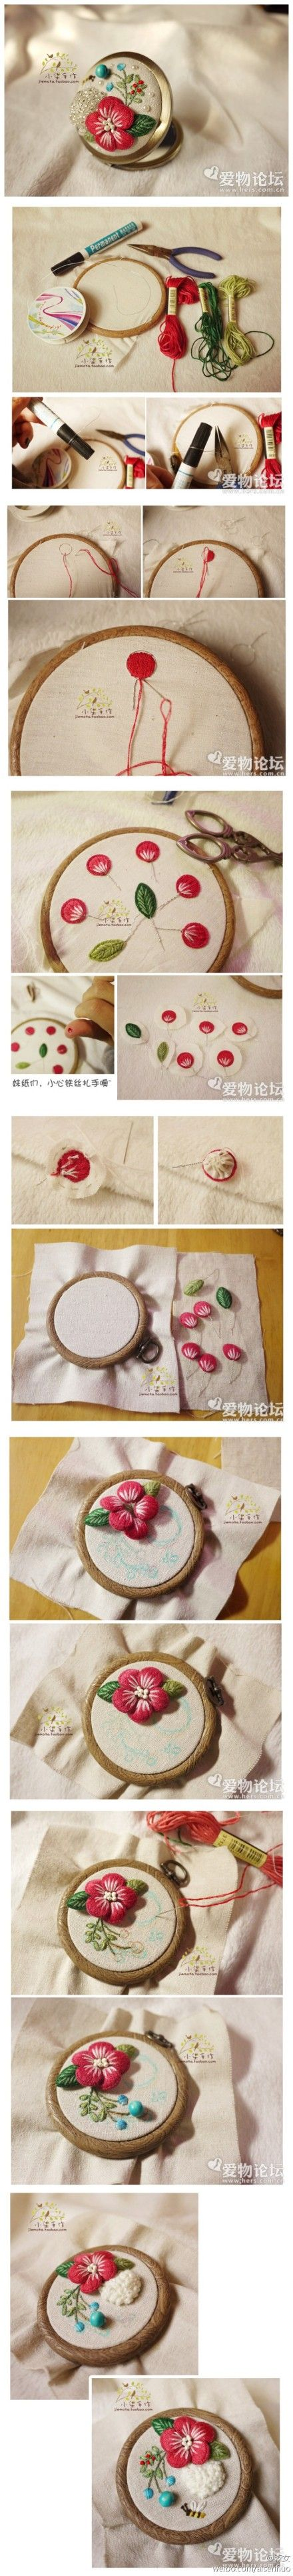 How To 3d Flowers Embroidery